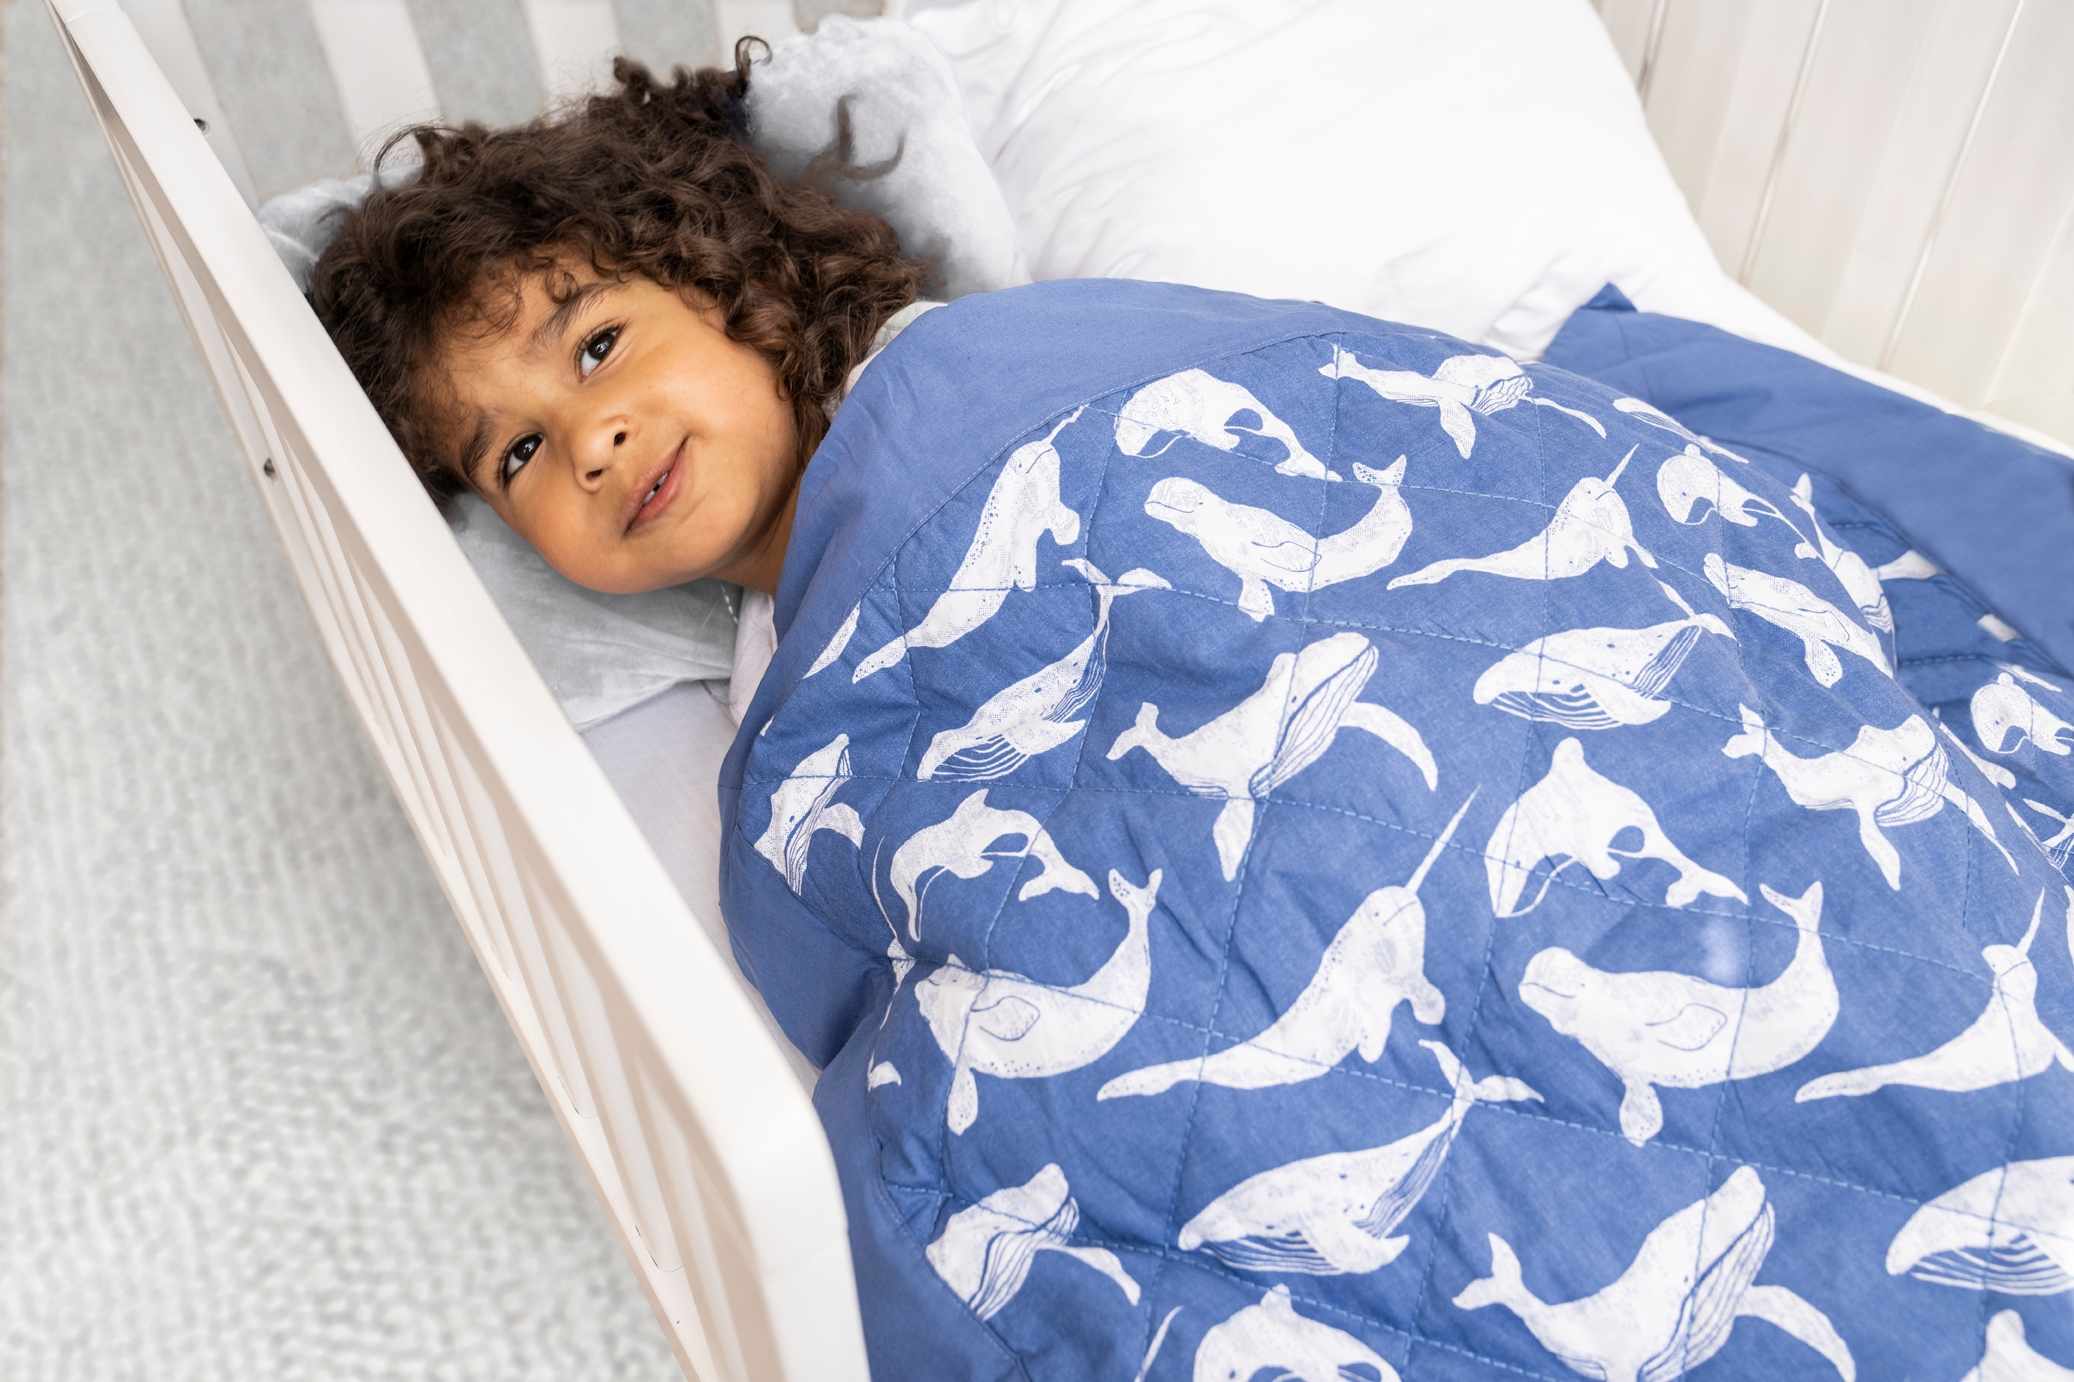 toddler boy in bed with toddler-bed weighted blanket 2.65 lbs whale watching